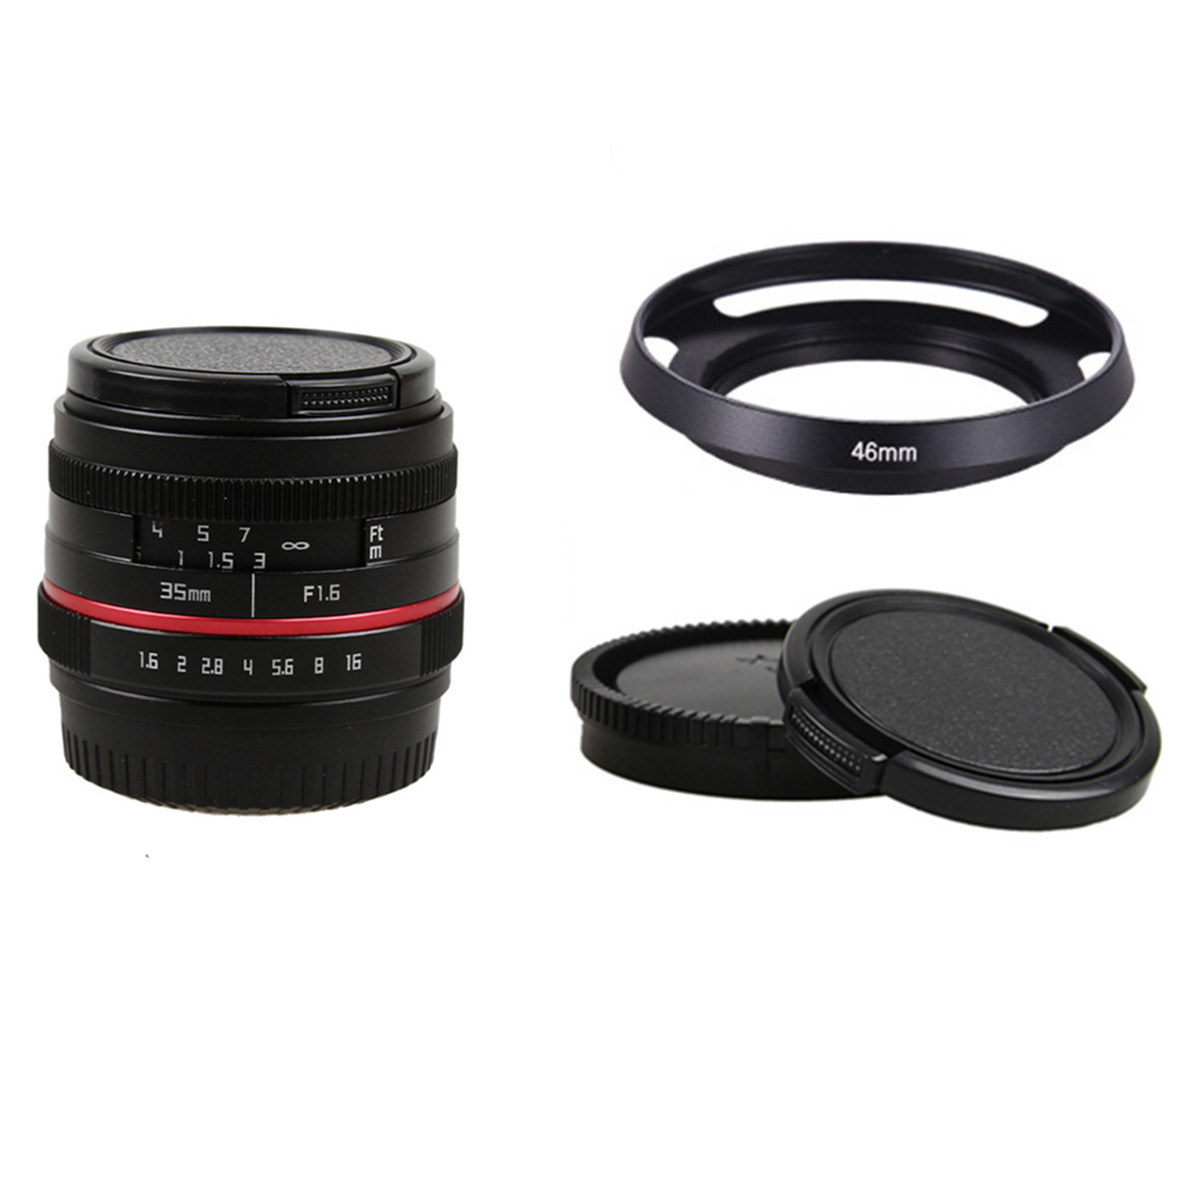 50mm f/1.8 APS-C F1.8 camera Lens for SONY E Mount A6500 A6300 A6100 A6000 A5100 A5000 NEX-7 NEX-6 NEX5/B/R NEX-3 original lcd 3 inch camera tempered glass screen protector for sony a5100 a6000 a5000 a6500 a6300 hd toughened protective film